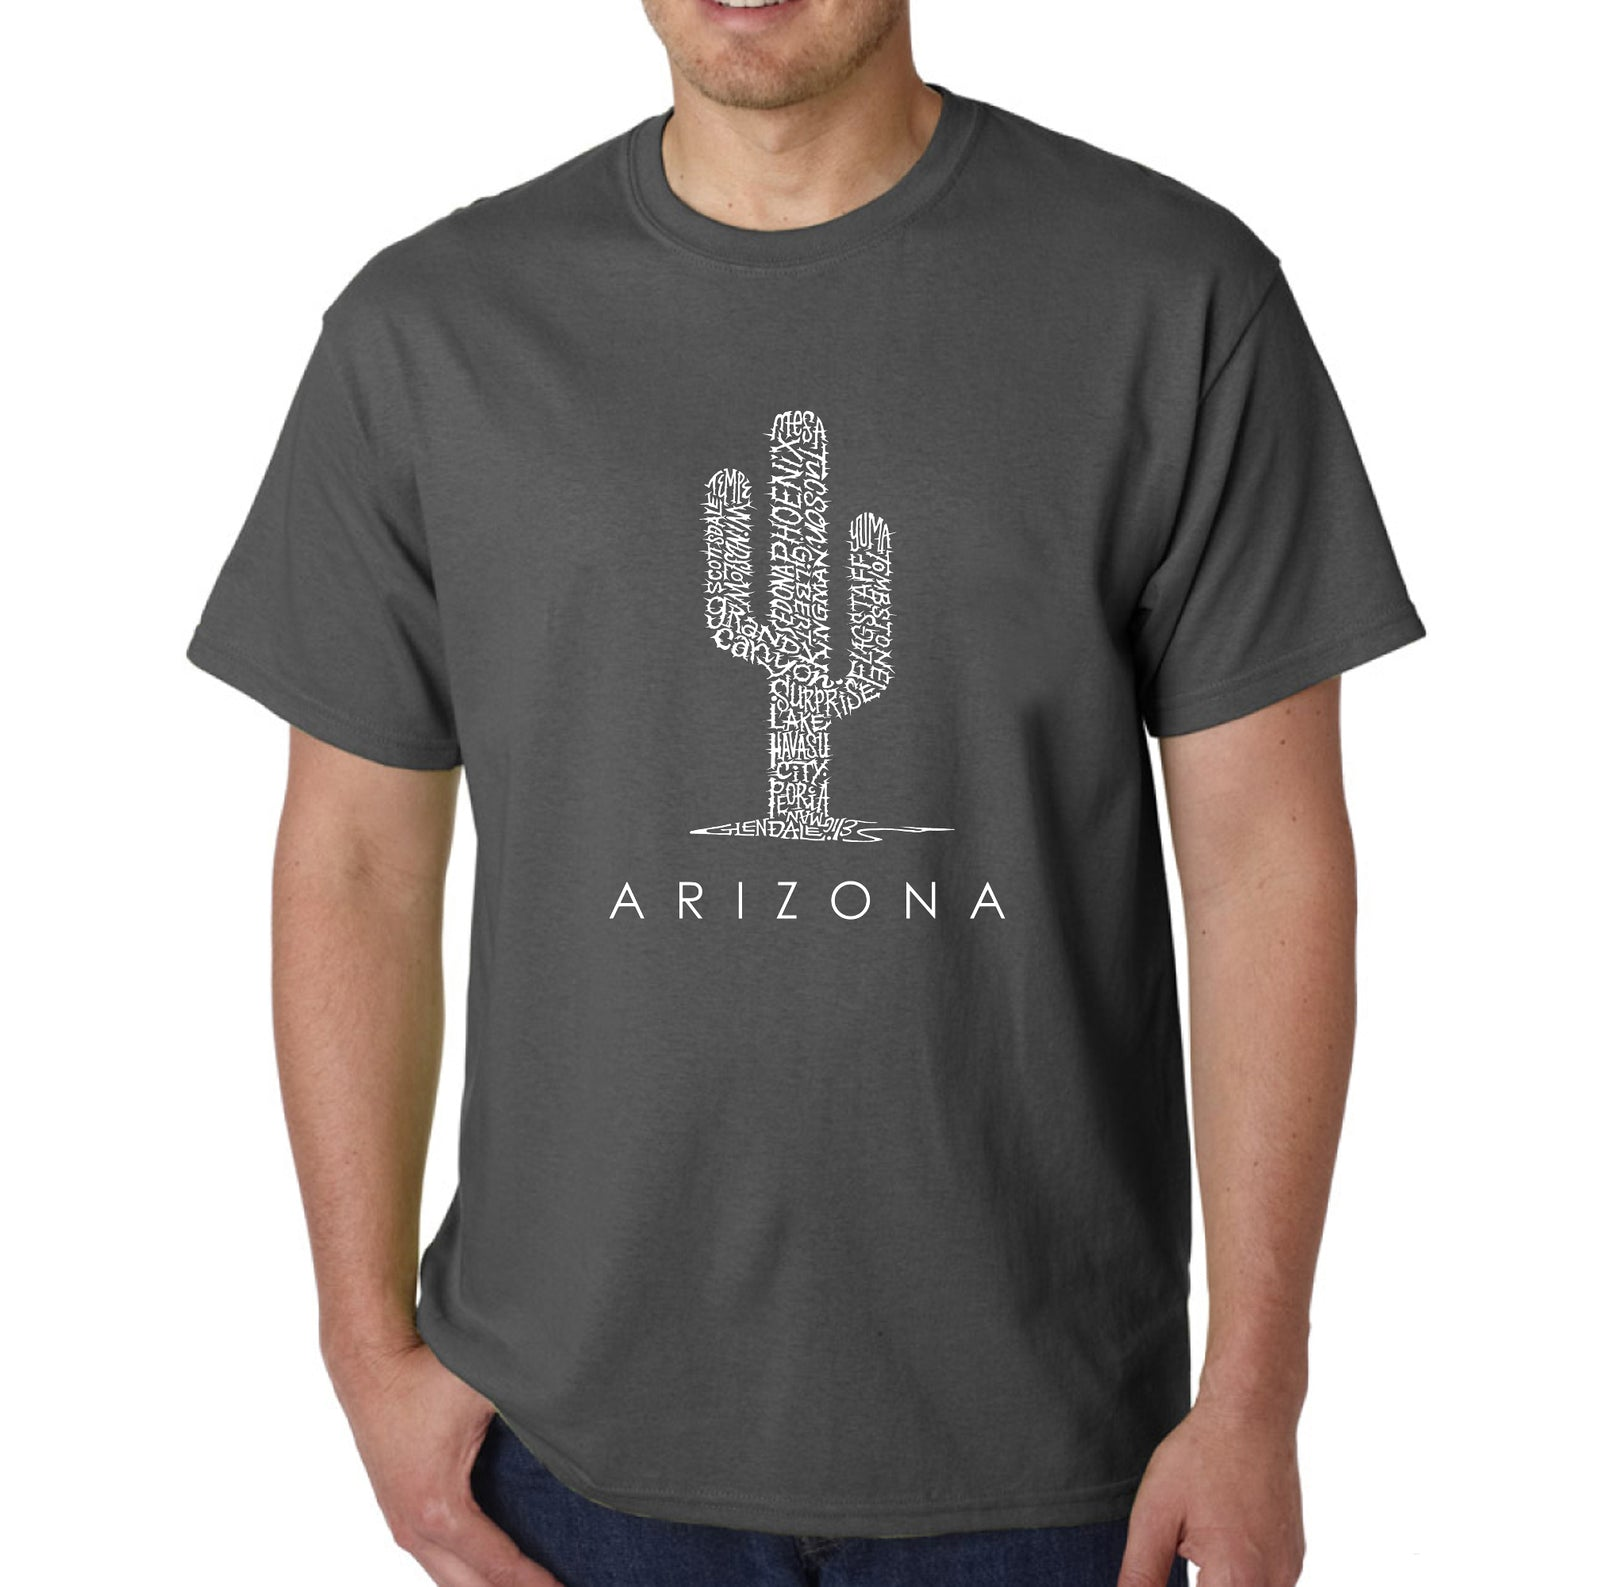 Men's T-shirt - Arizona Cities